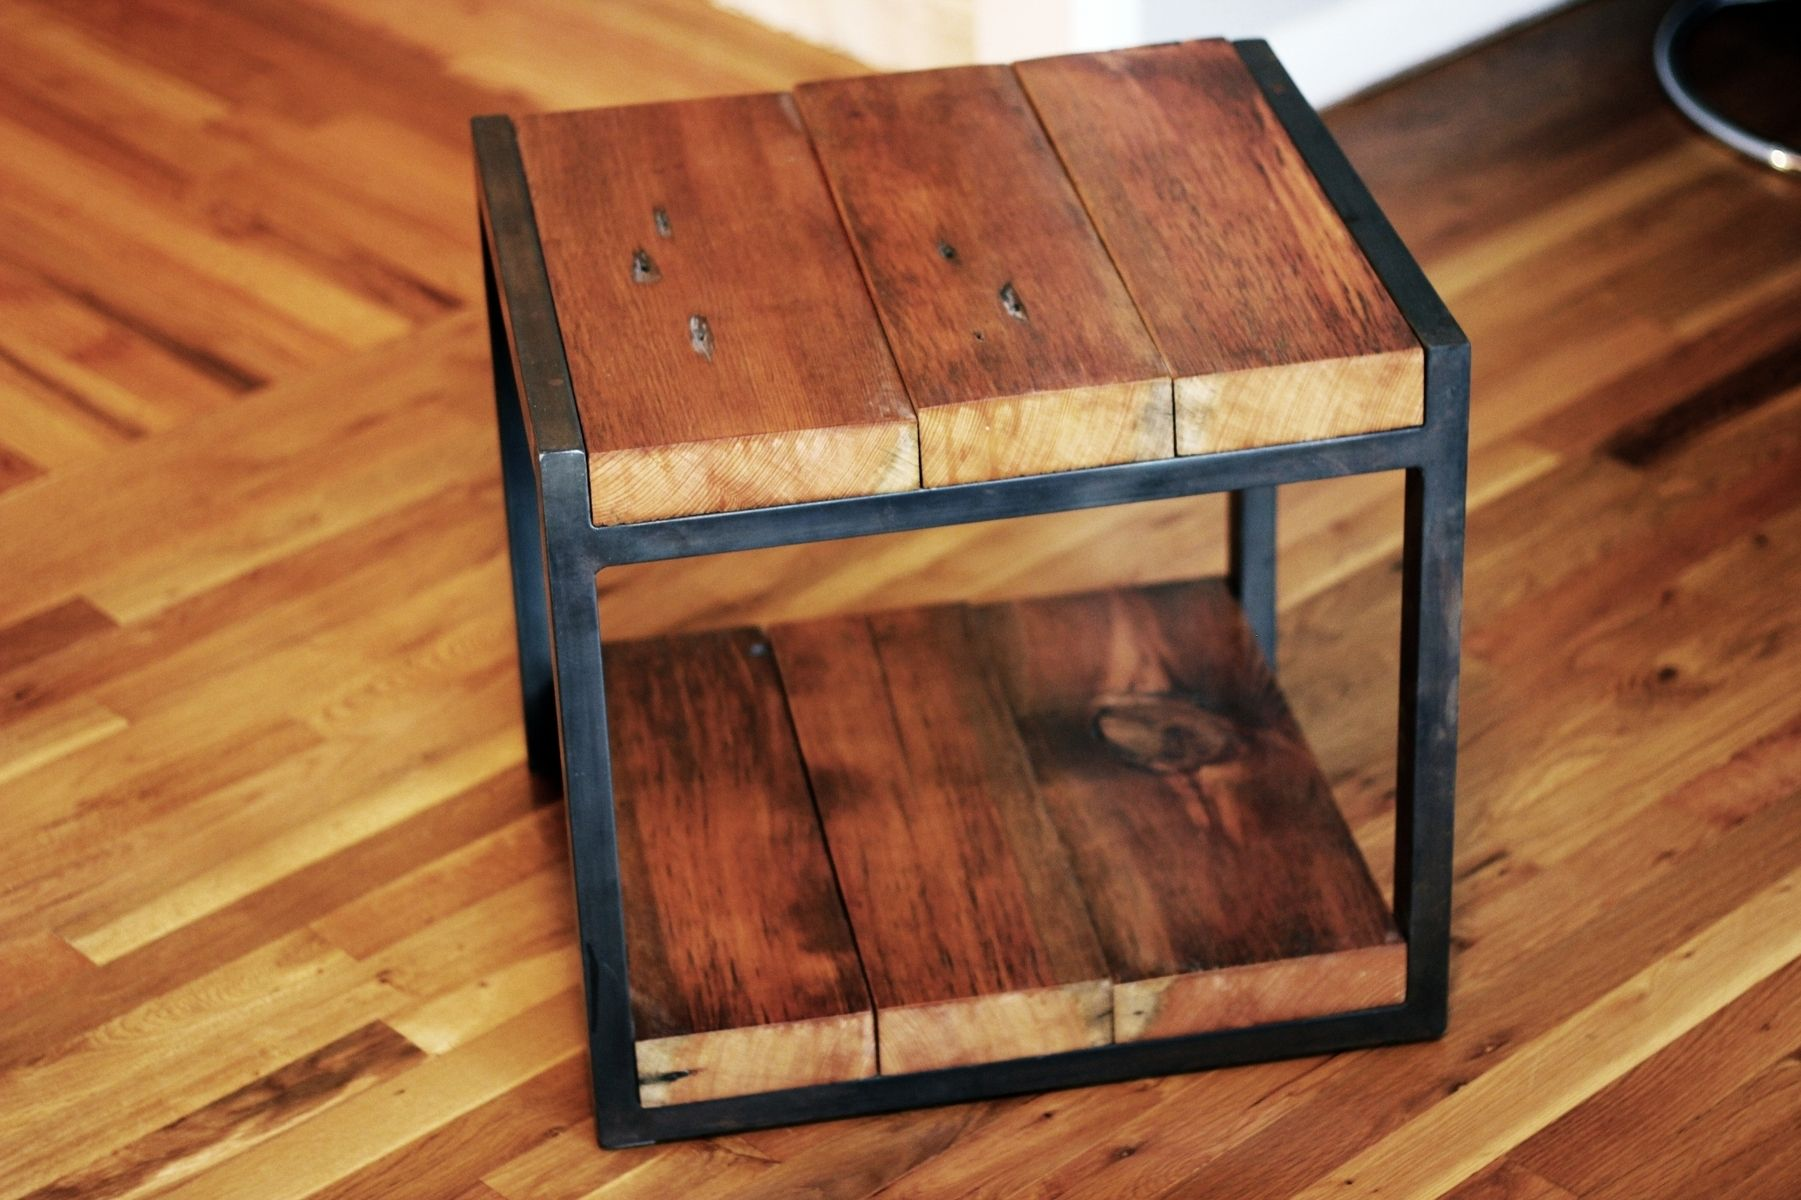 end table design barn wood clipped barnd tables barnwood and coffee for plans small woodworking full size antique wrought iron patio furniture vinyl lace tablecloth oval folding